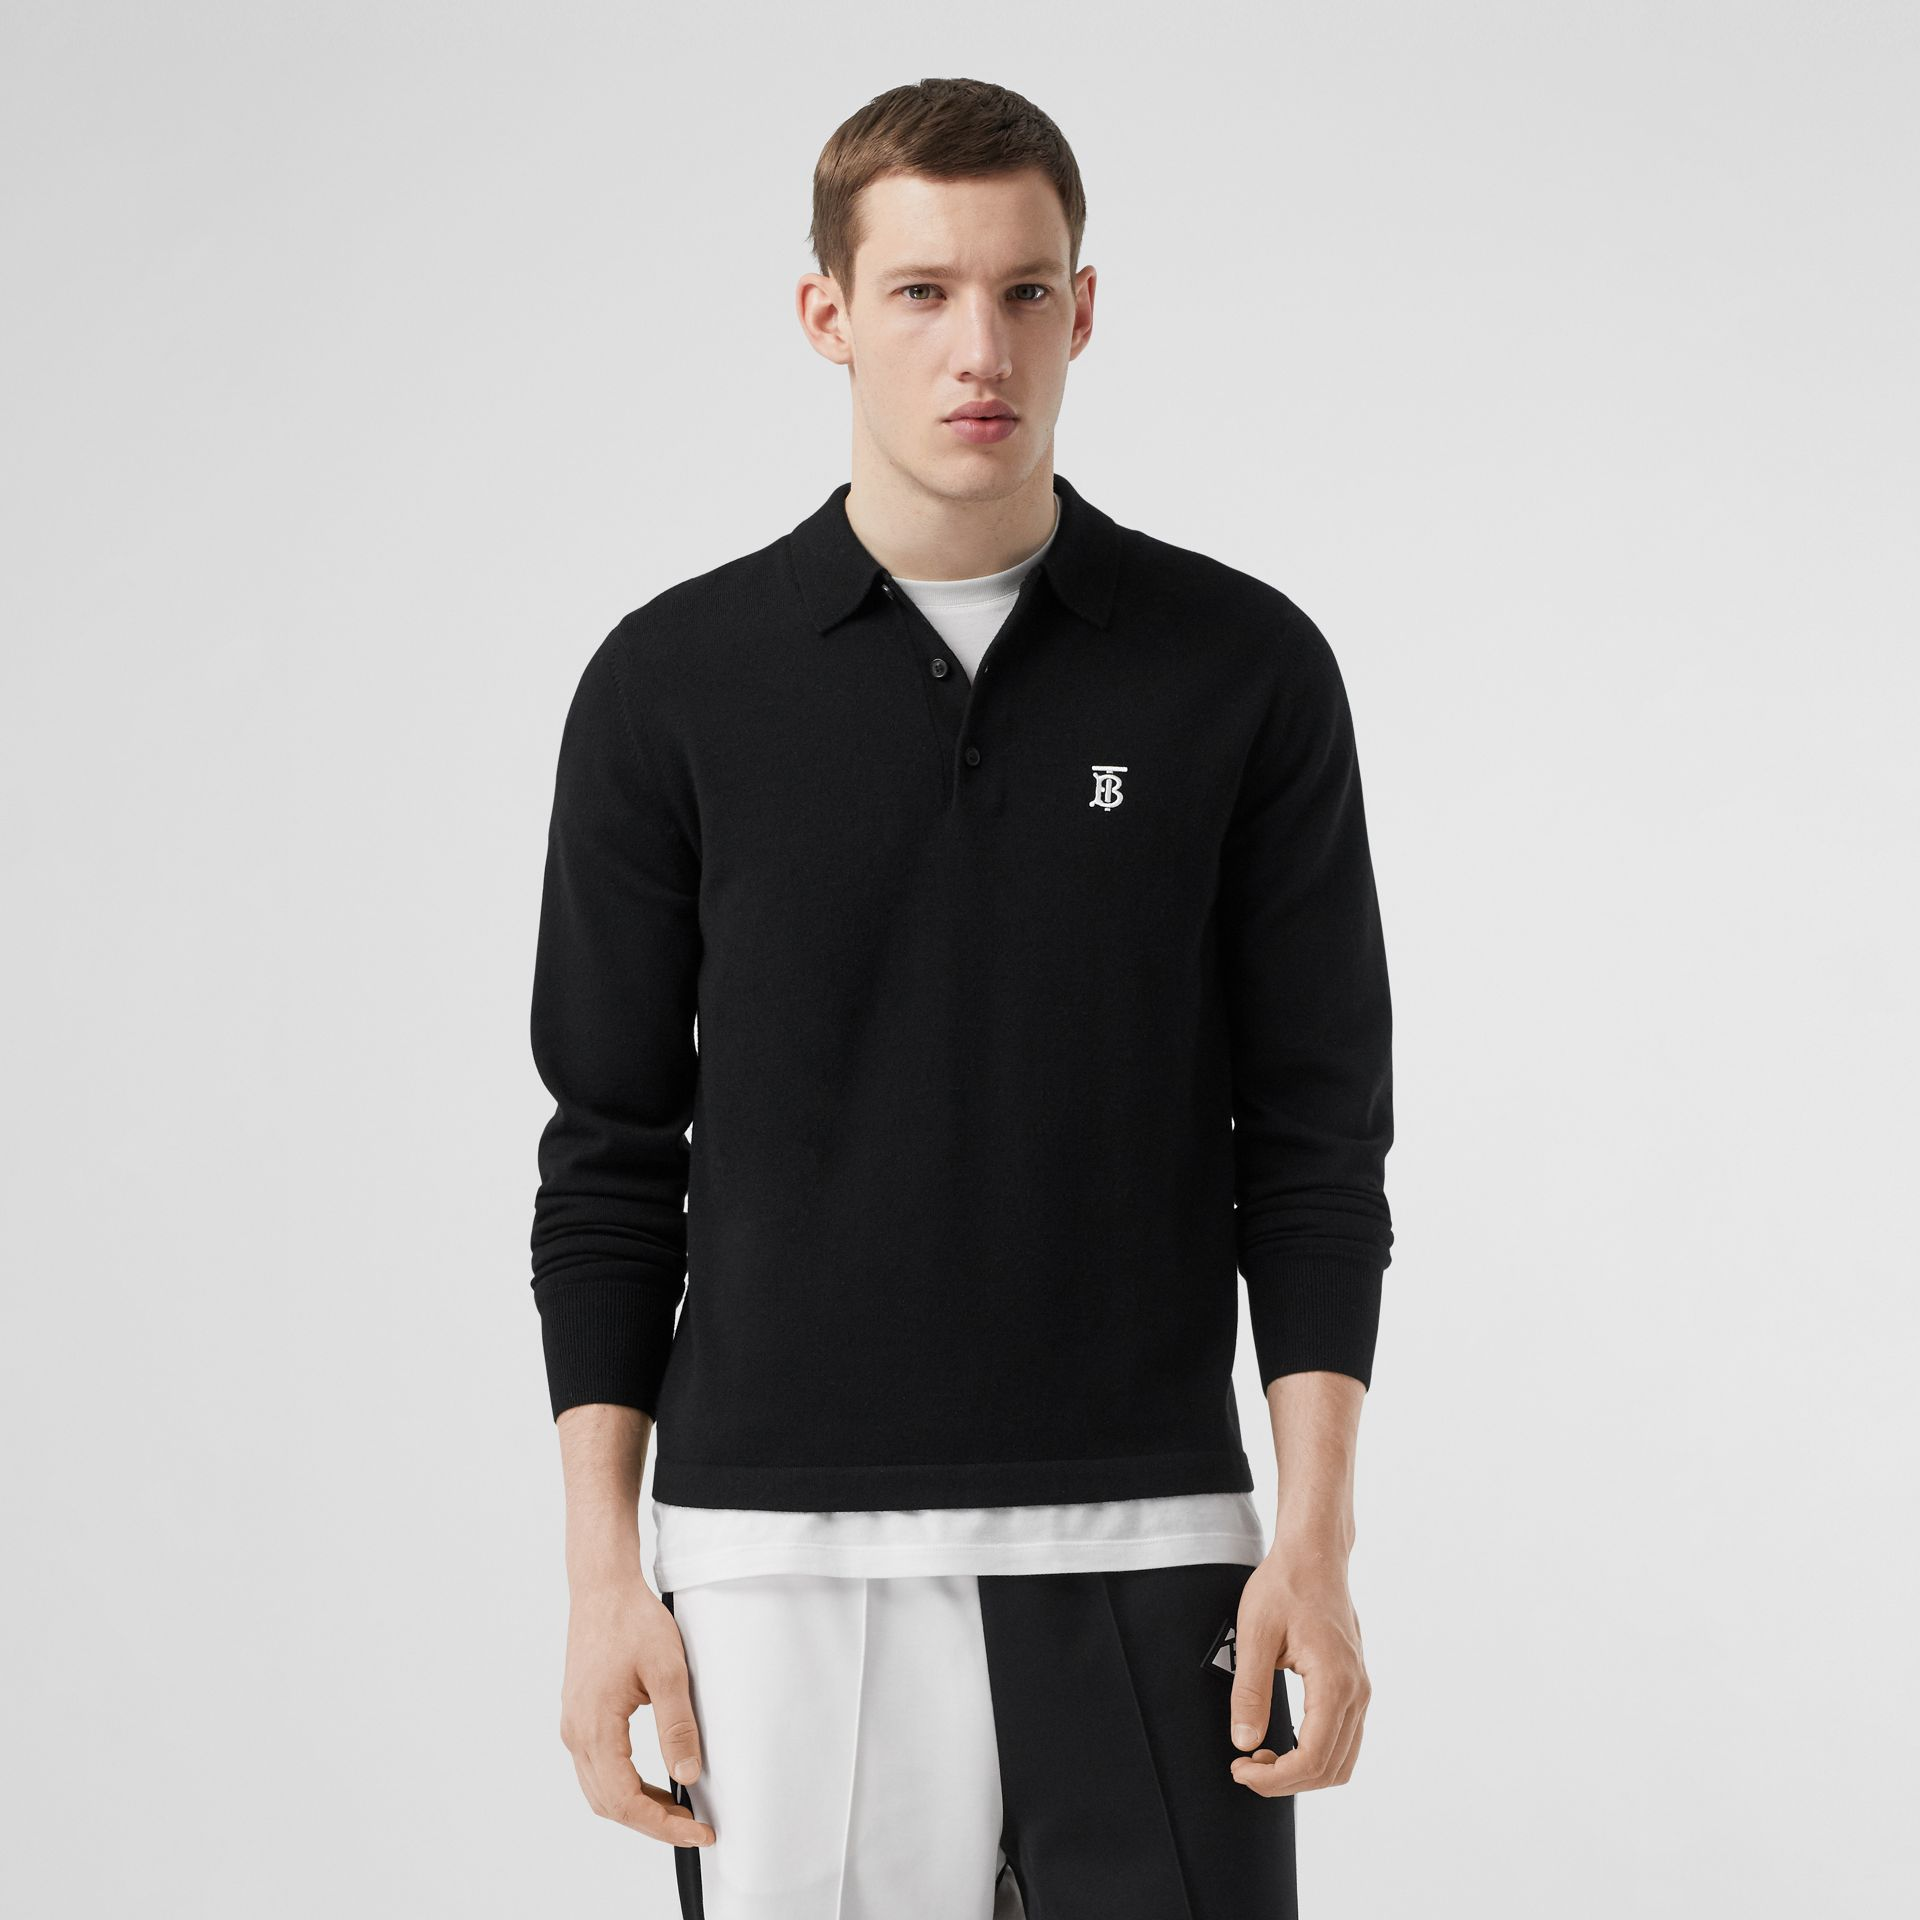 Long-sleeve Monogram Motif Merino Wool Polo Shirt in Black - Men | Burberry - gallery image 4